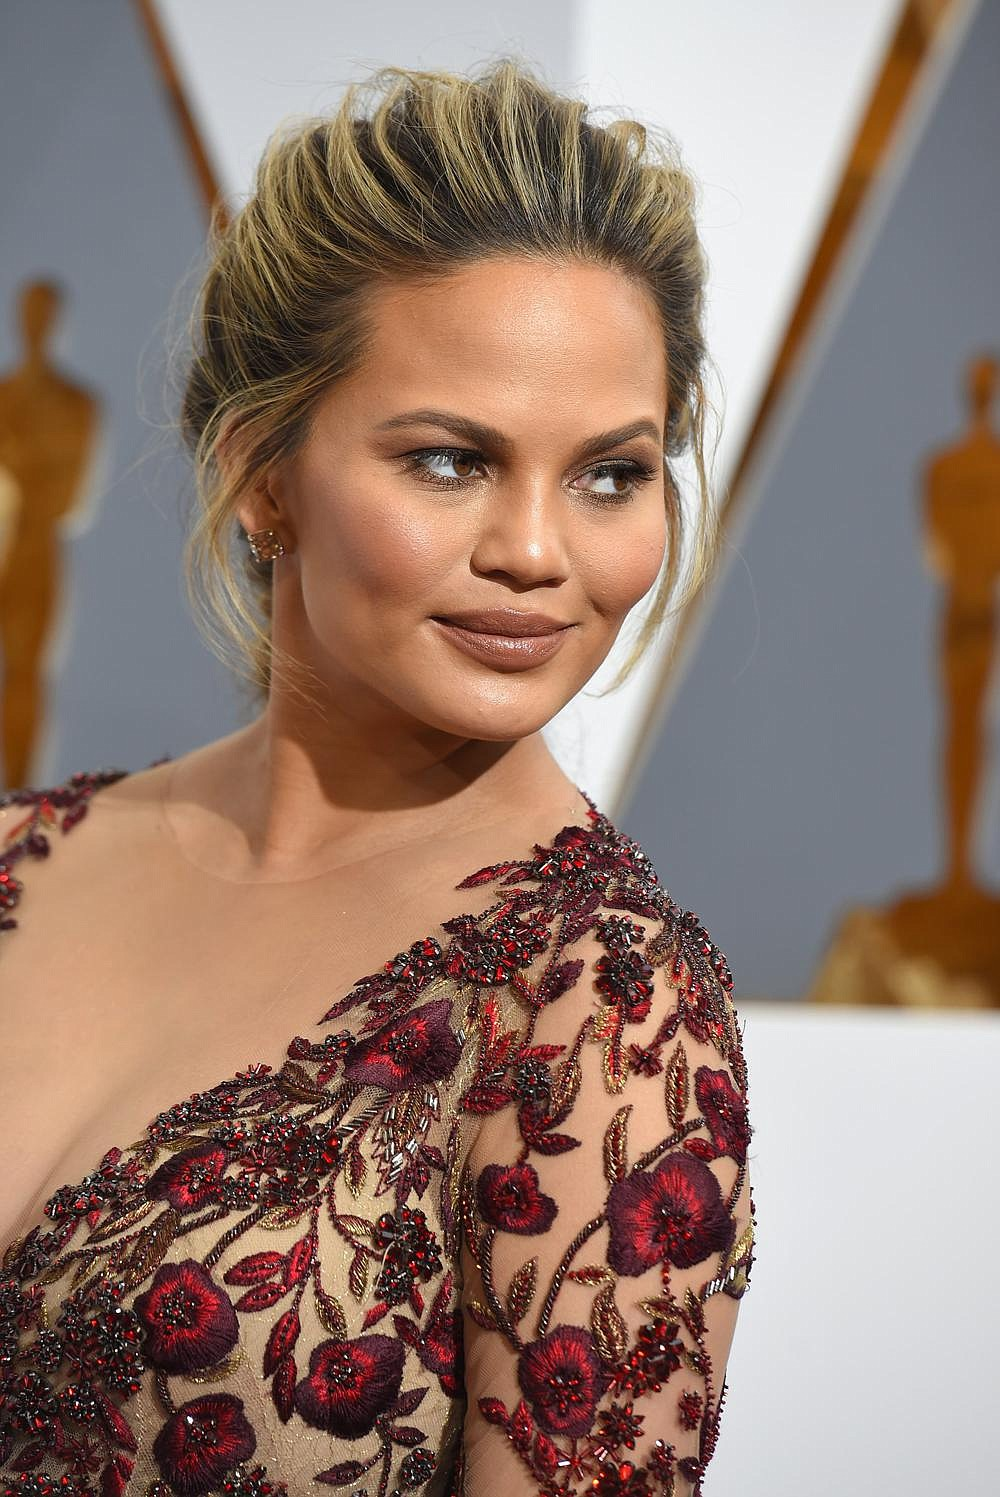 Chrissy Teigen arrives at the Oscars on Sunday, Feb. 28, 2016, at the Dolby Theatre in Los Angeles. 